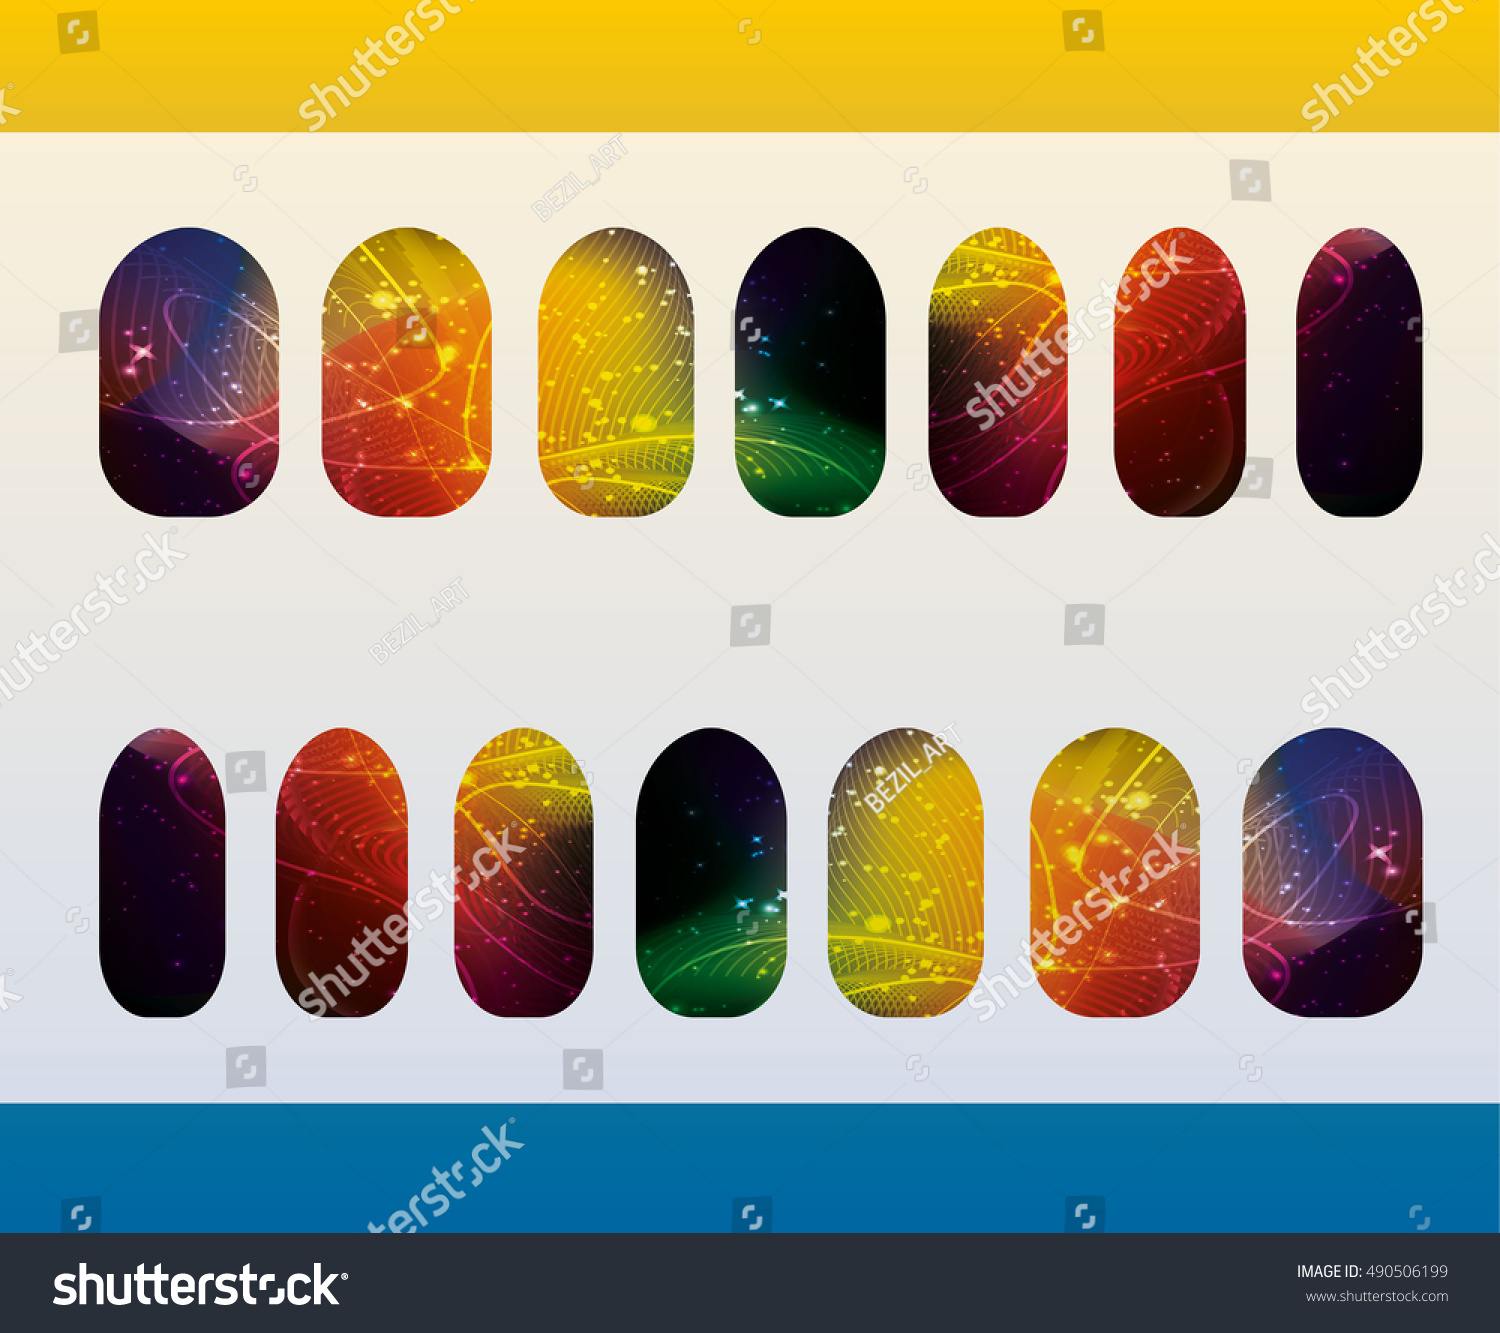 Nail Art Color Templates Glowing Glitter Stock Vector 490506199 ...